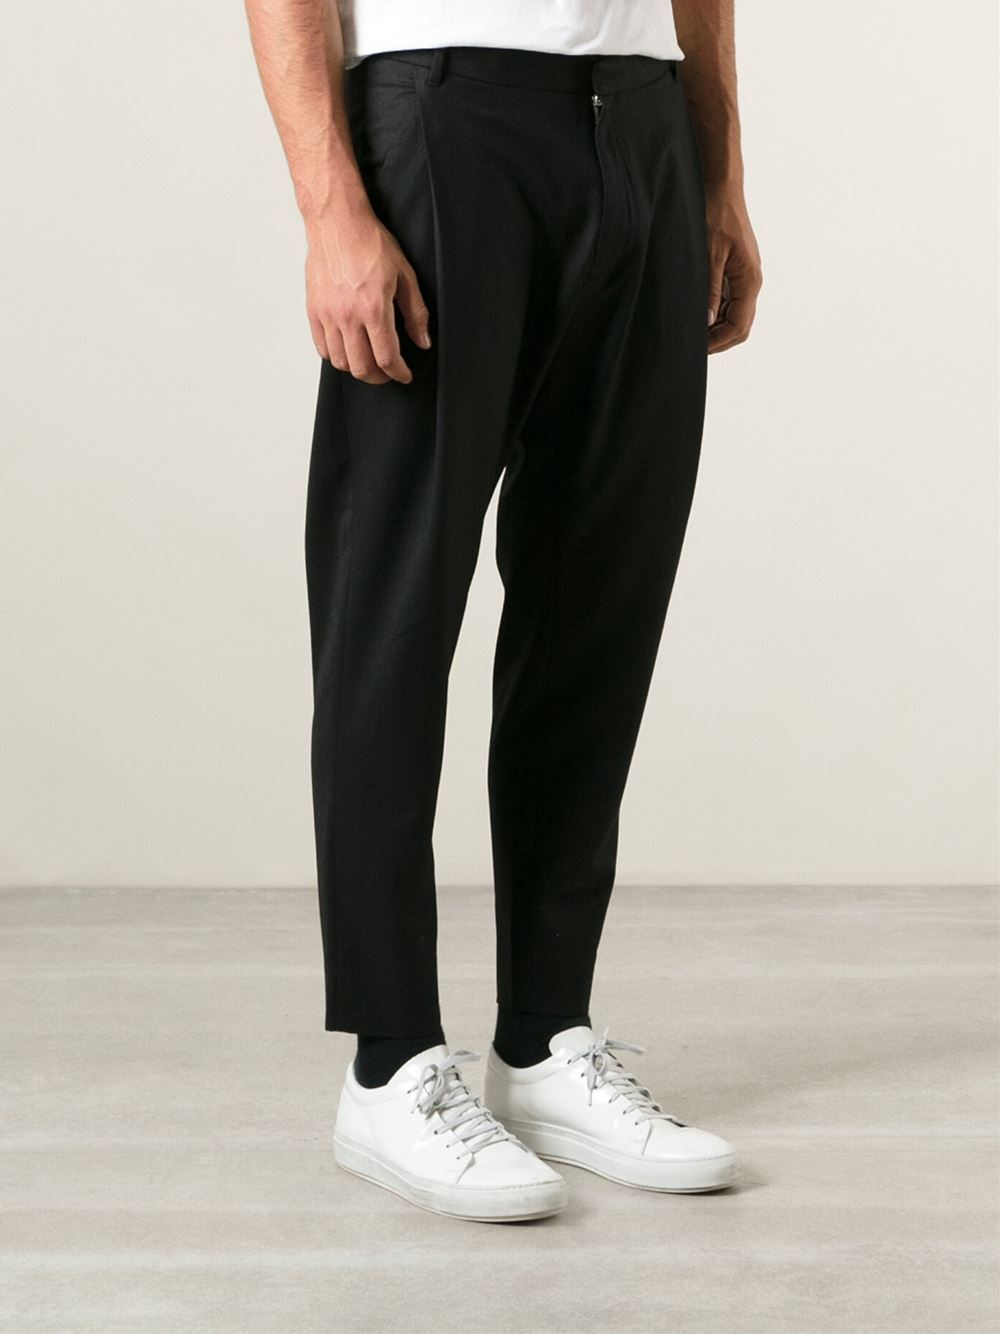 Whyred 'Orwell' Flannel Trousers in Black for Men